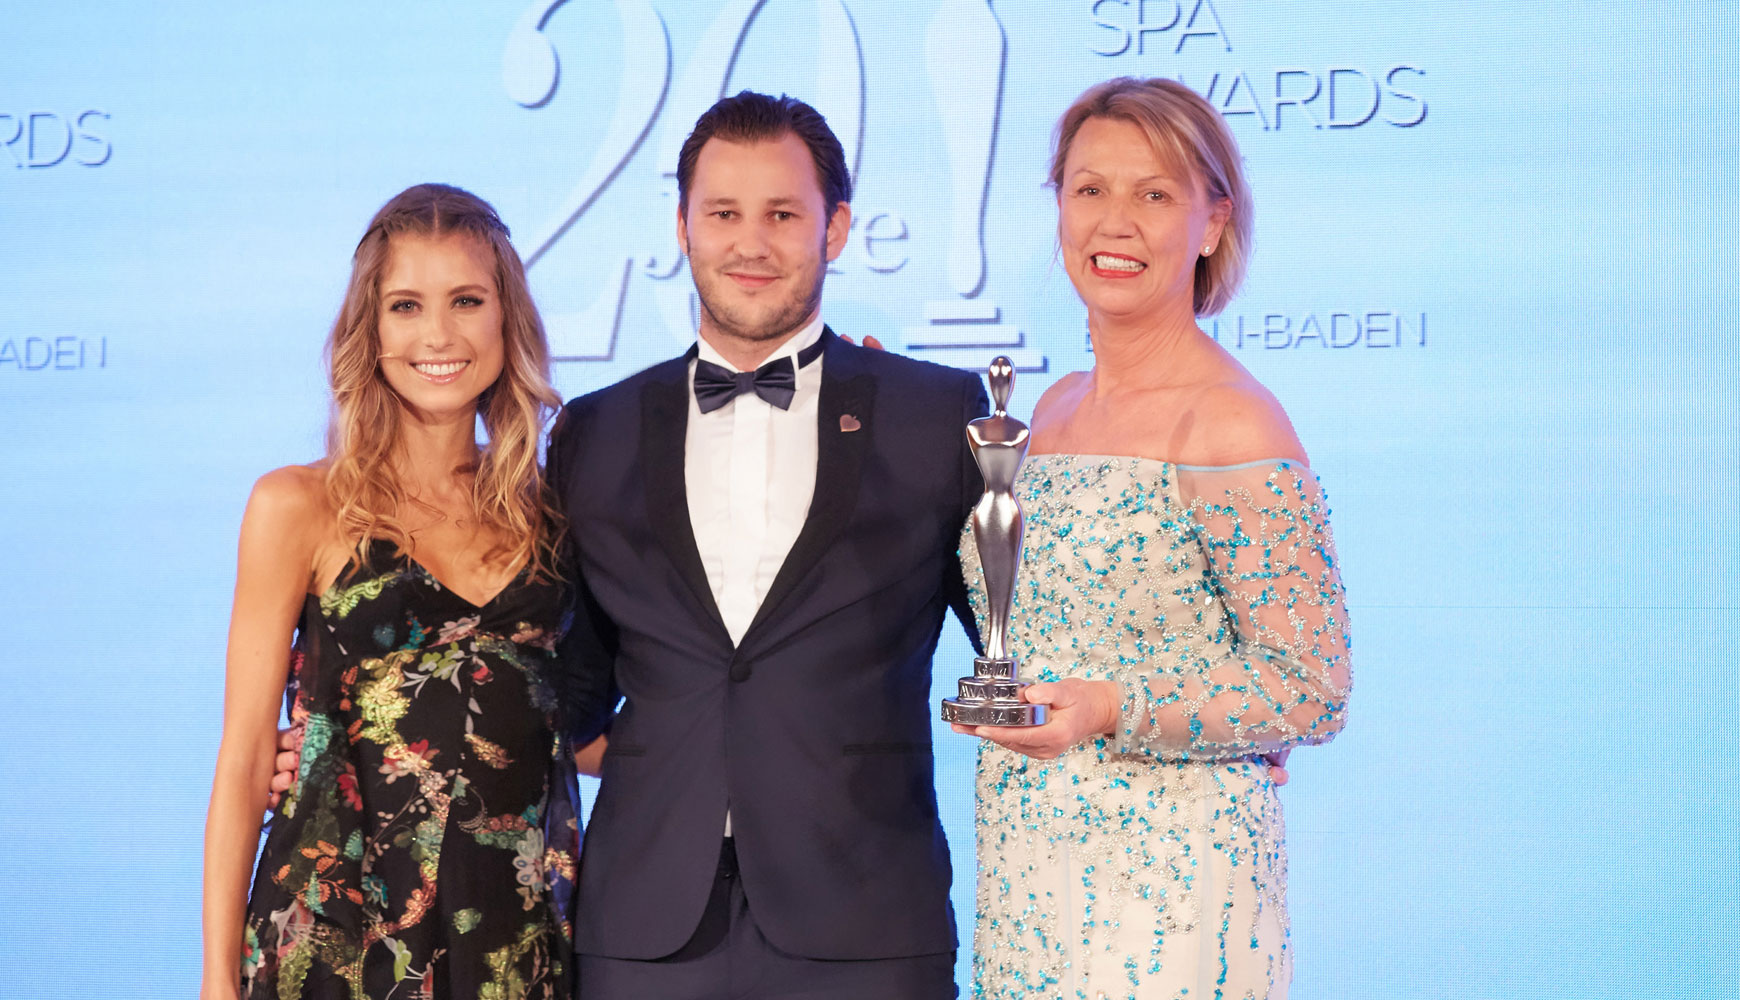 ANNEMARIE BÖRLIND - Nicolas Lindner and Daniela Lindner at the GALA SPA AWARDS